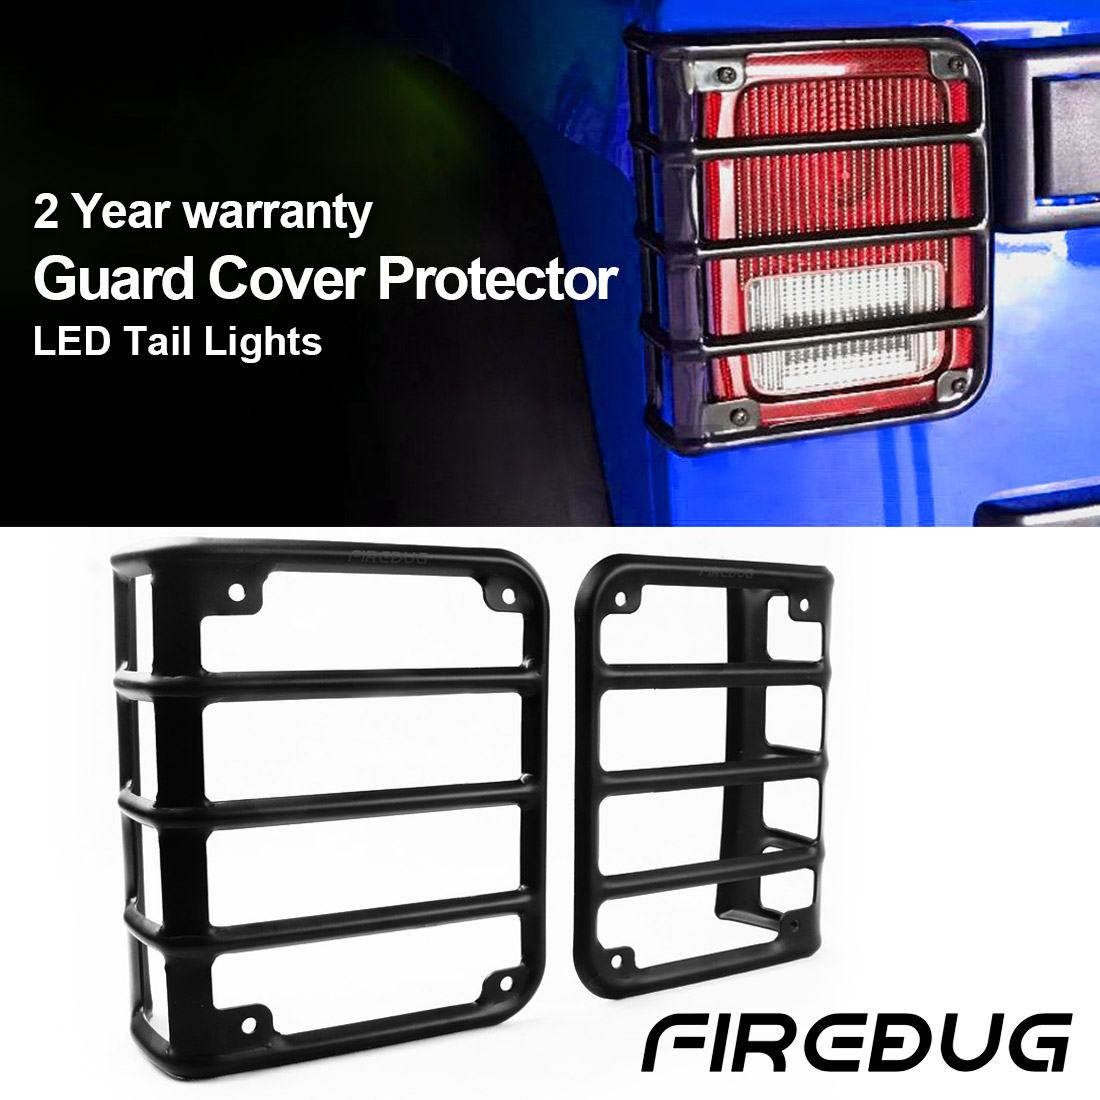 Firebug Jeep Taillight Covers, Jeep Tail Light Protectors, Jeep Light Cover